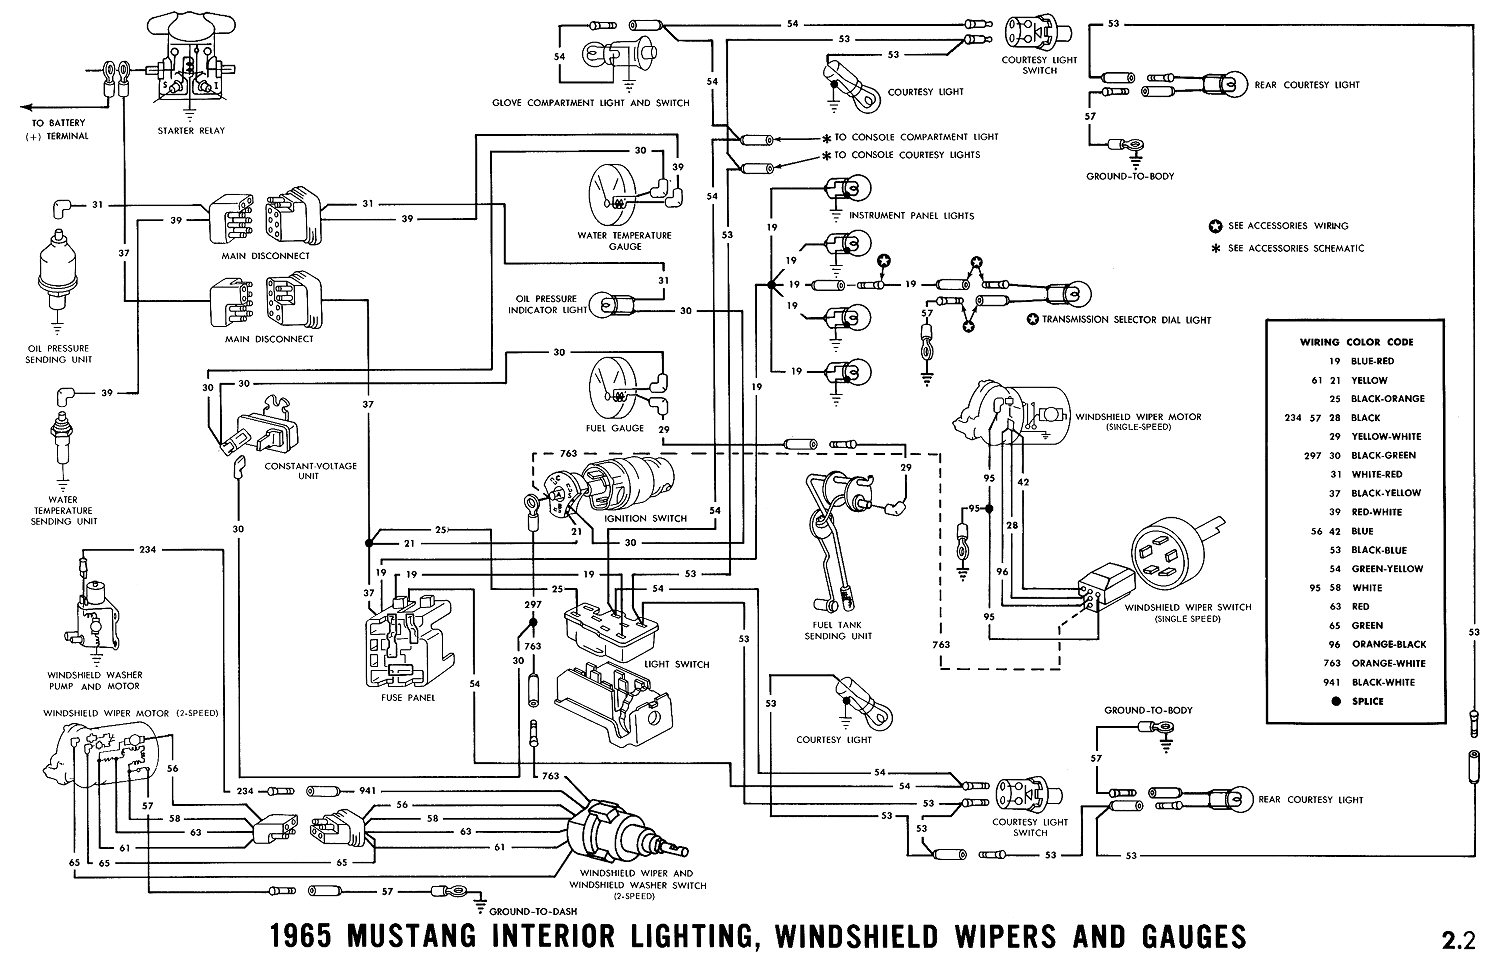 1970 Mercury Cougar Wiring Diagram Library 1968 1965 Mustang Diagrams Average Joe Restoration 1999 Fuse Location